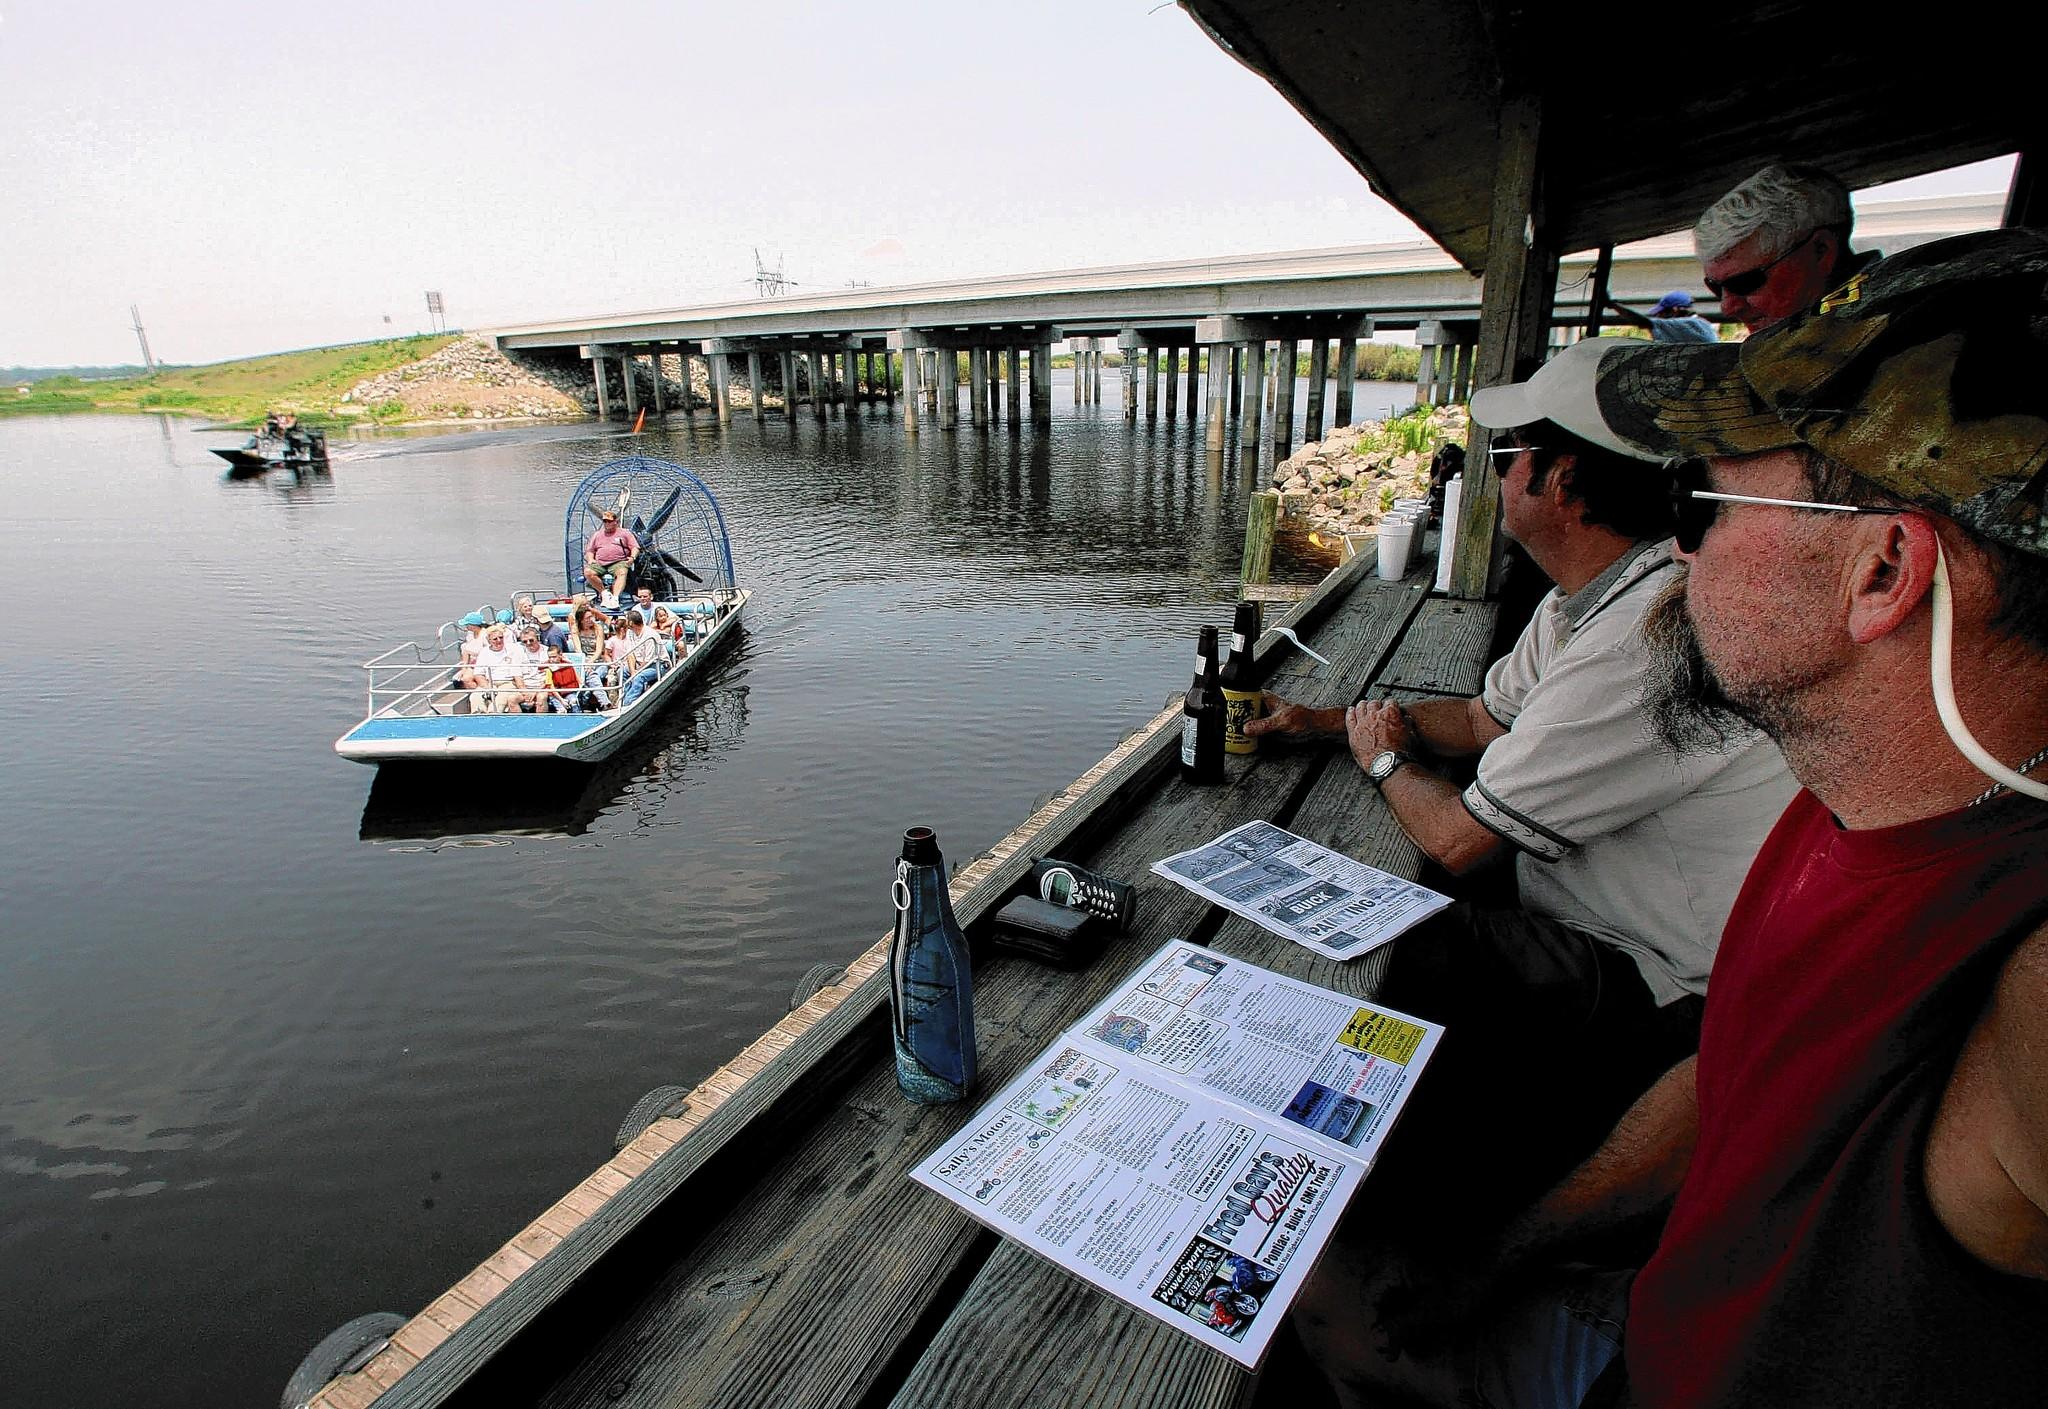 You can ride an airboat - or just watch them - at the Lone Cabbage Fish Camp, near Cocoa on State Road 520.